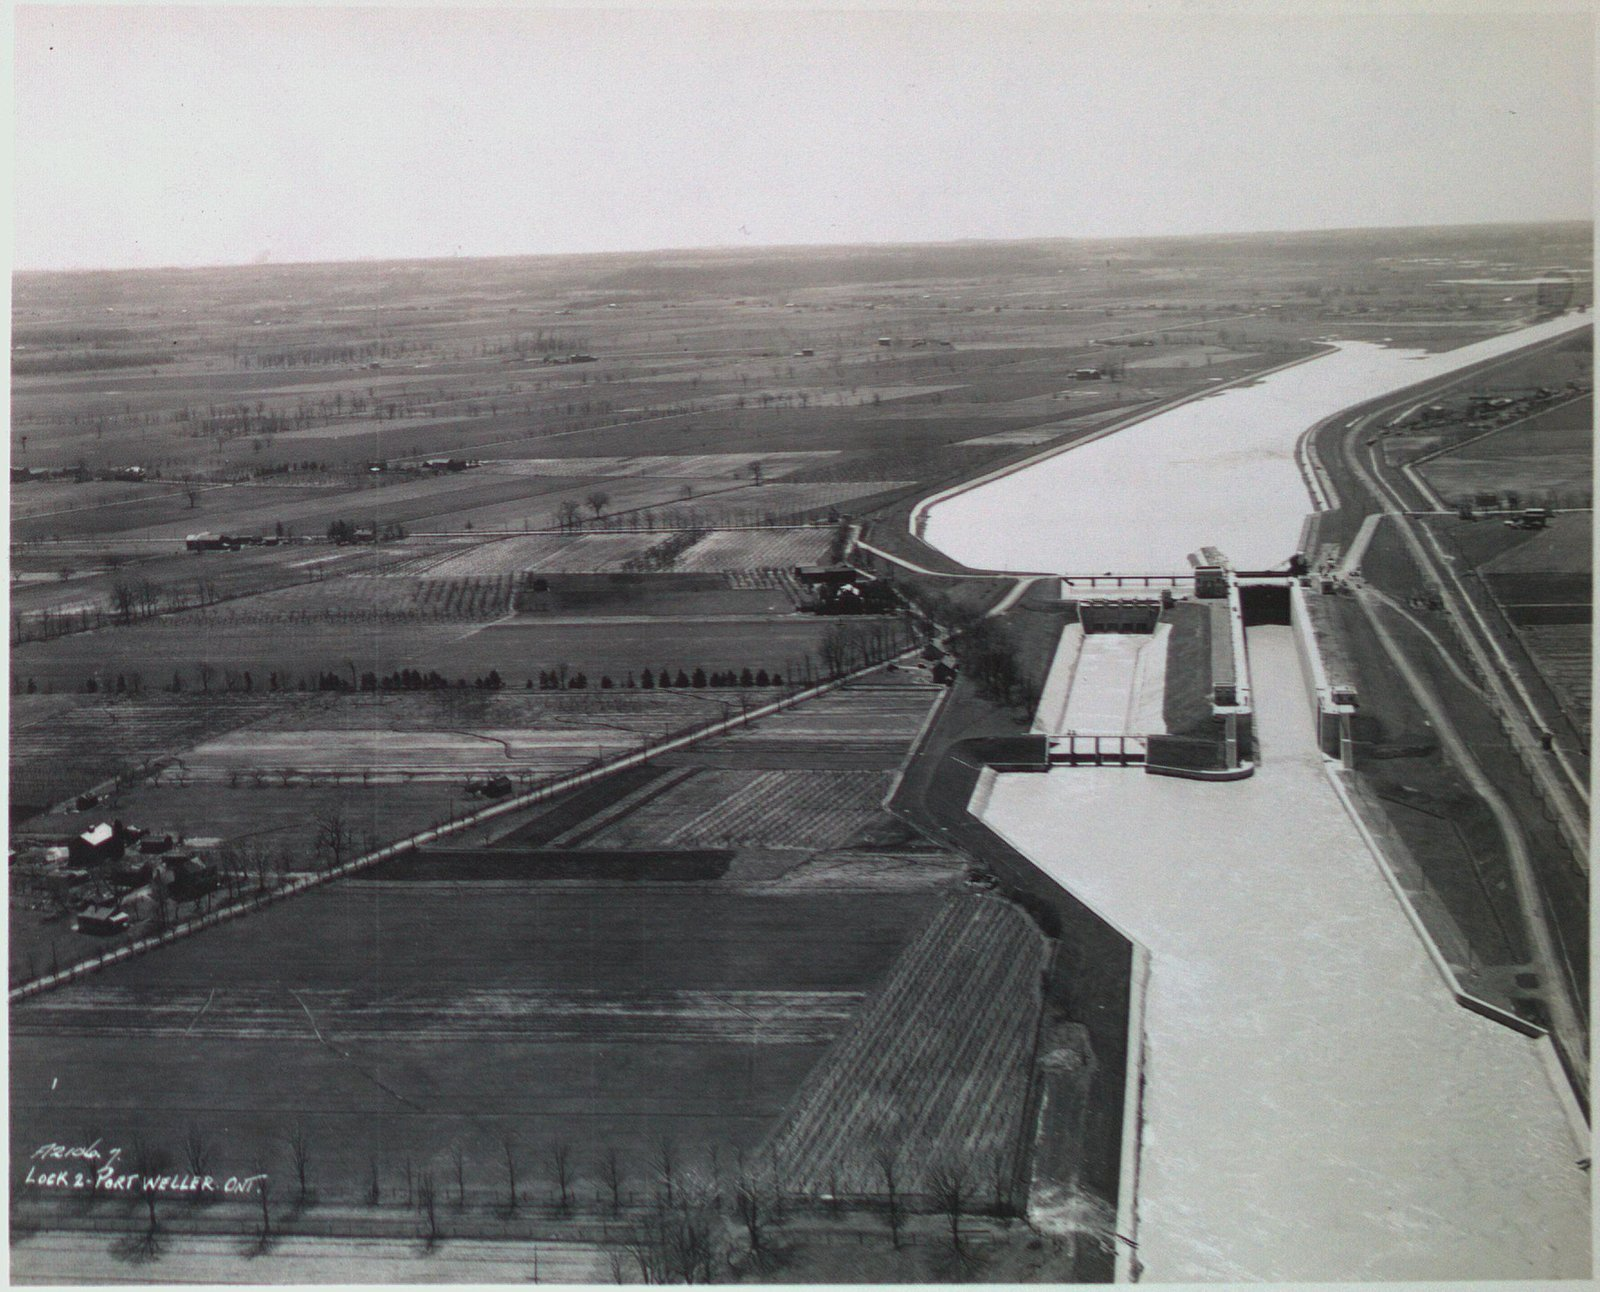 Lock 2 on the Welland Ship Canal Looking South